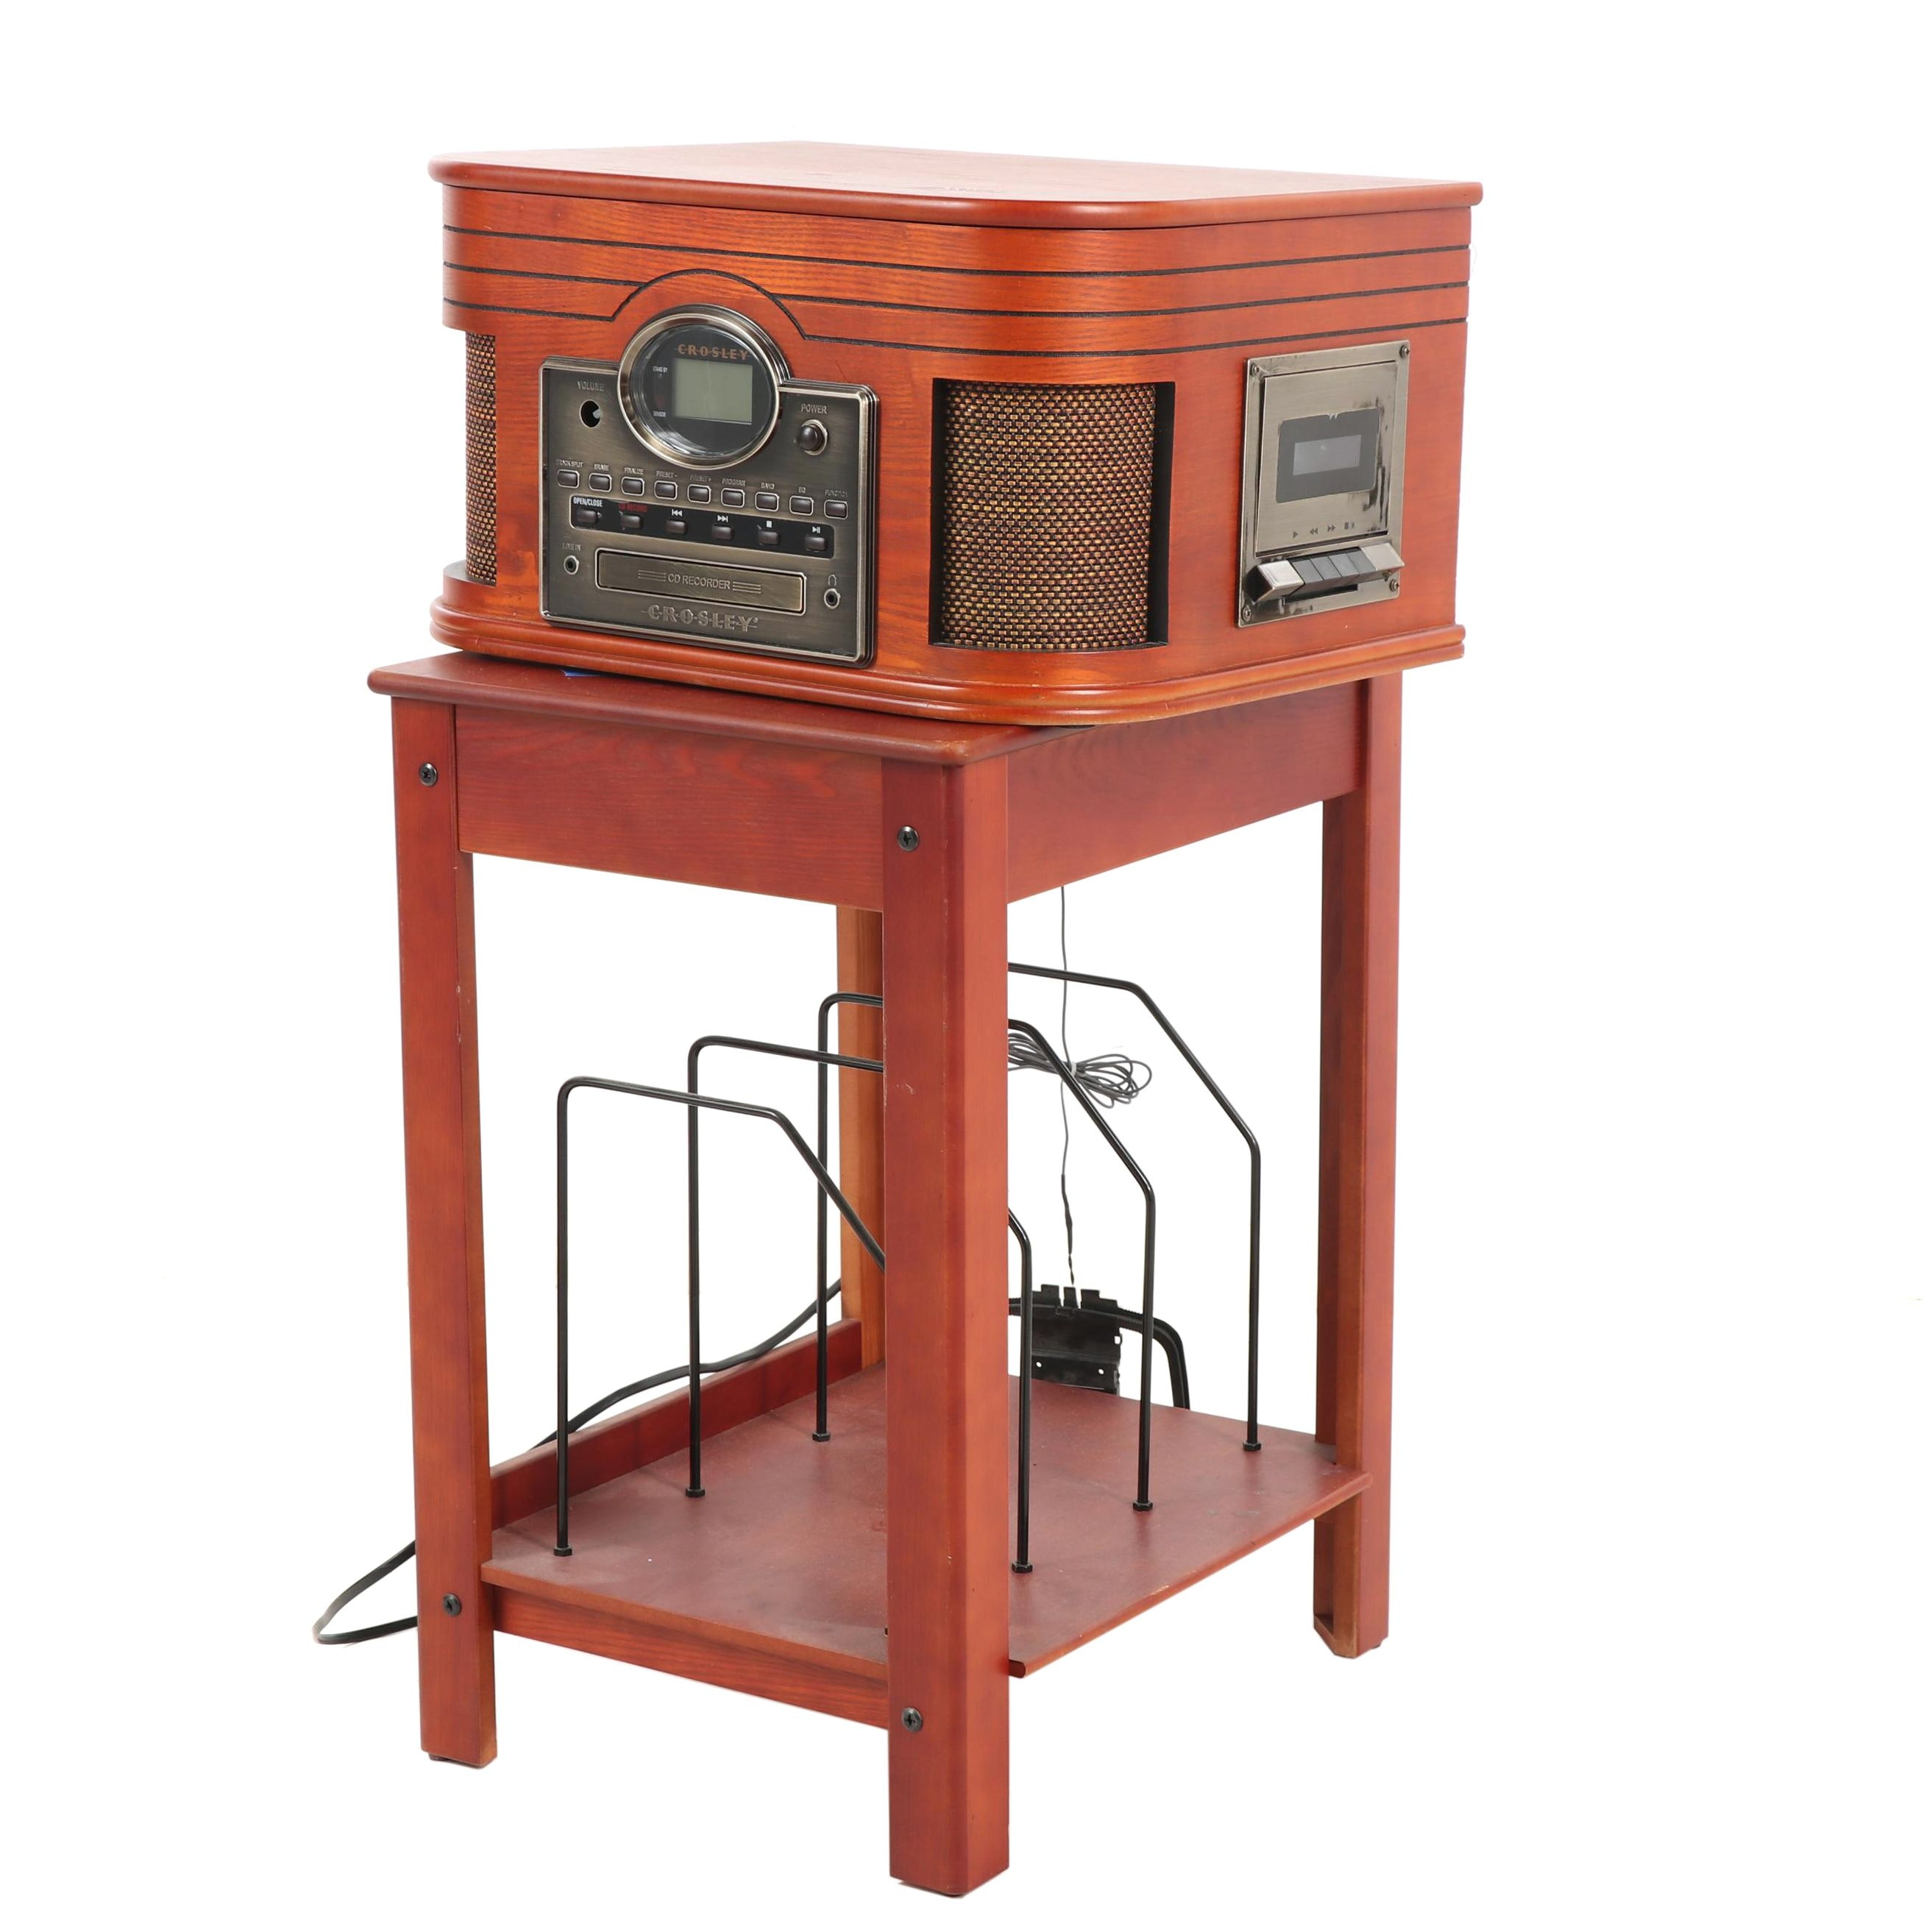 Crosley Model CR247 Combination Record Player/CD Recorder with Table